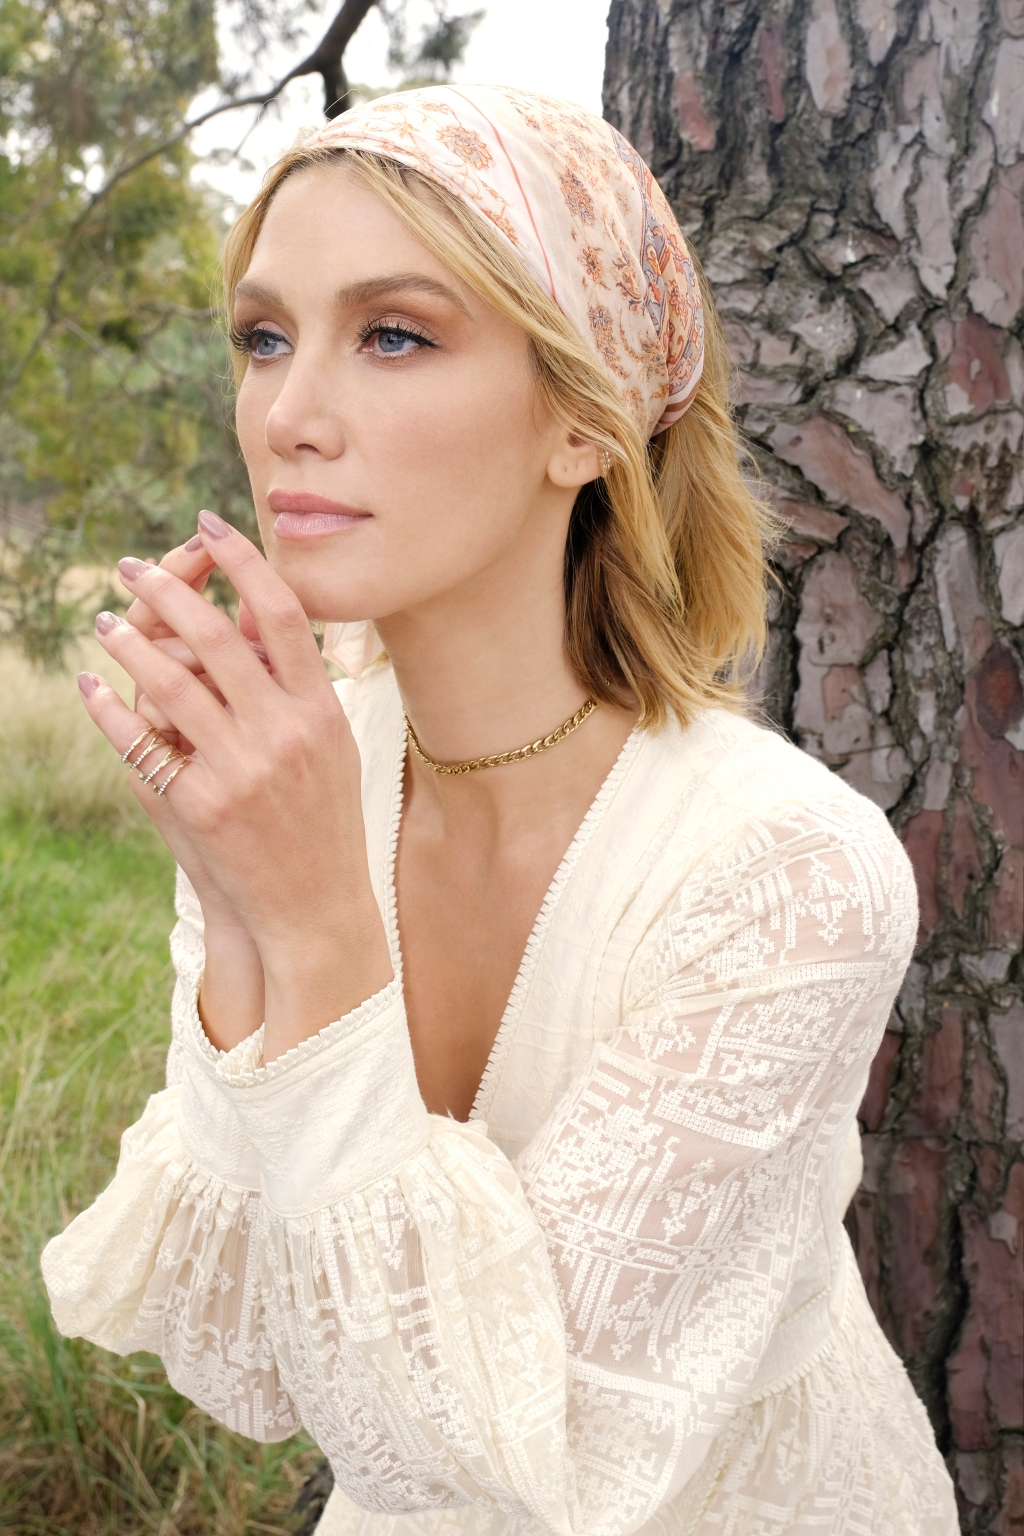 Delta Goodrem x We Are Kindred